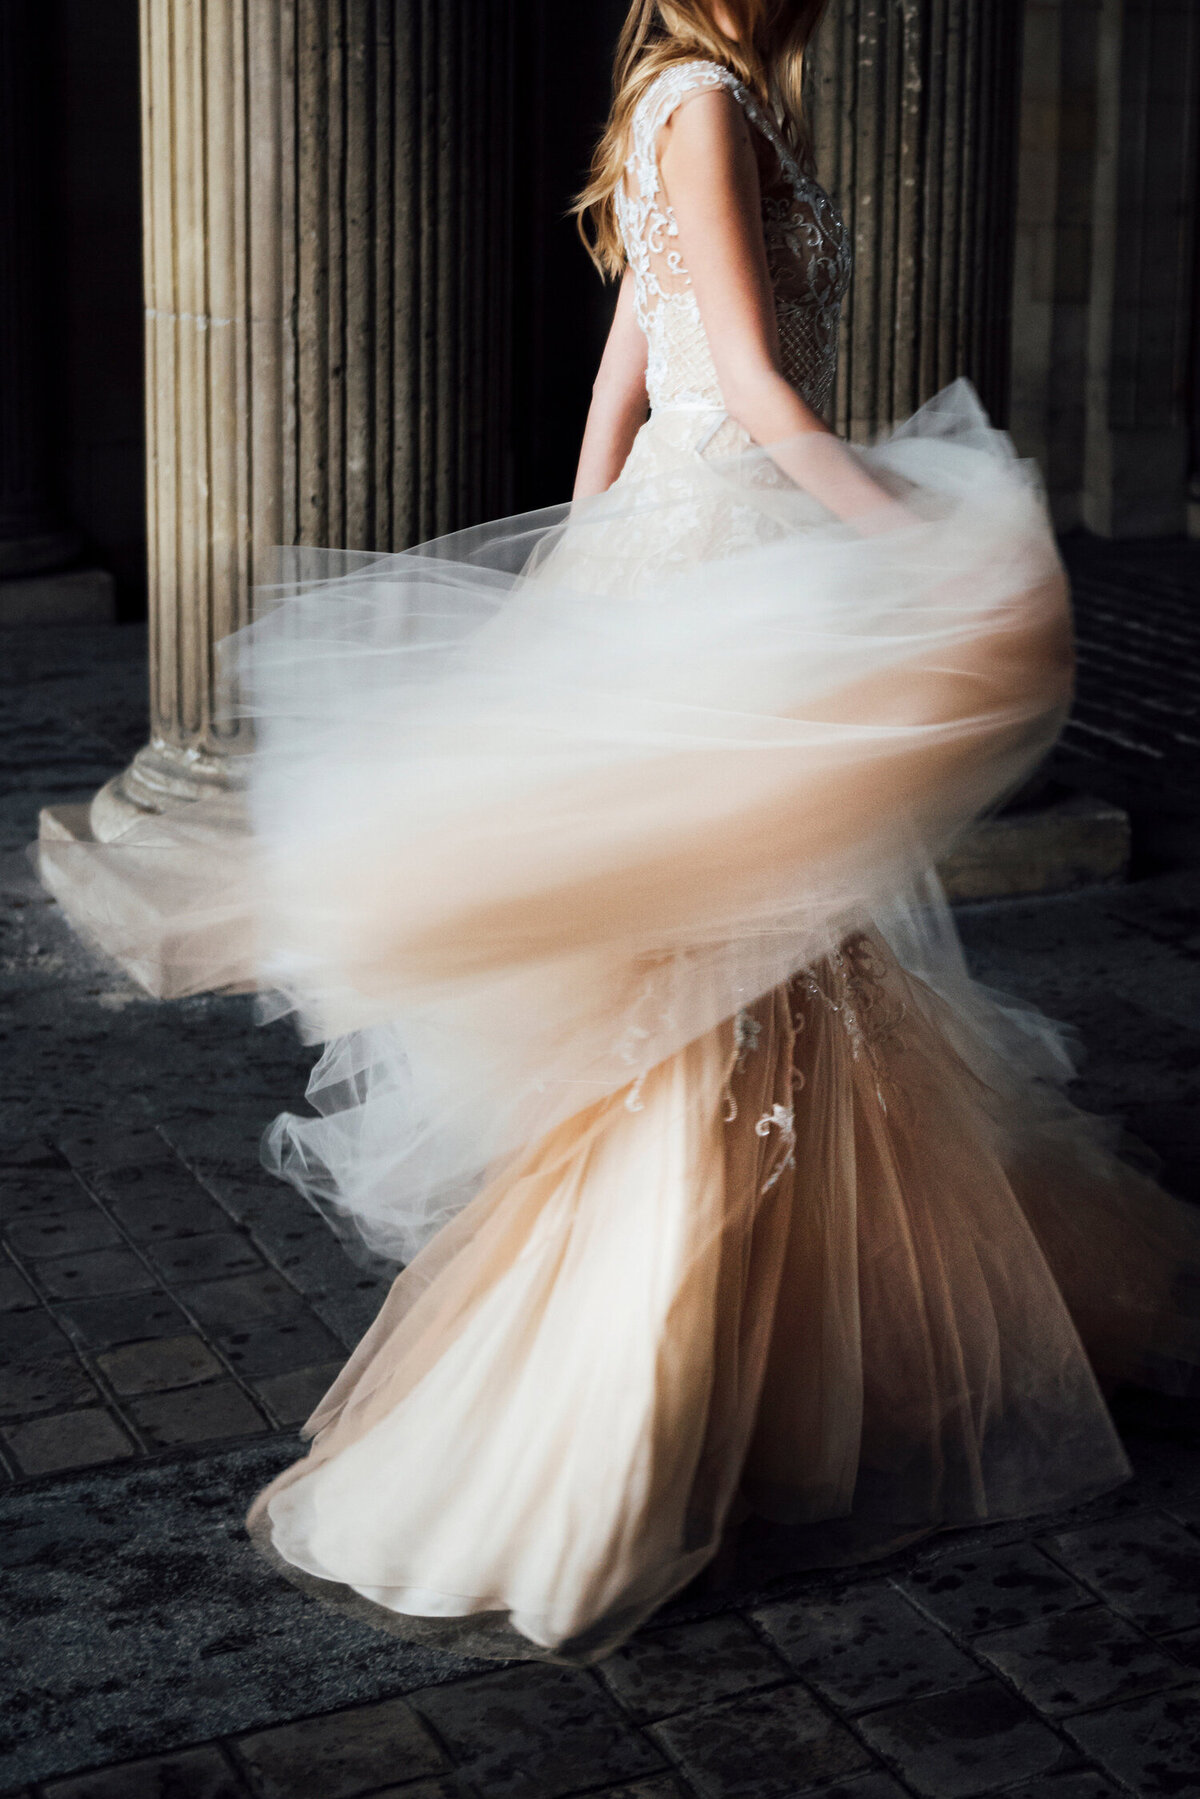 Katie Mitchell, Monique Lhuillier Bridal Paris France Wedding Trine Juel Hair and makeup 10